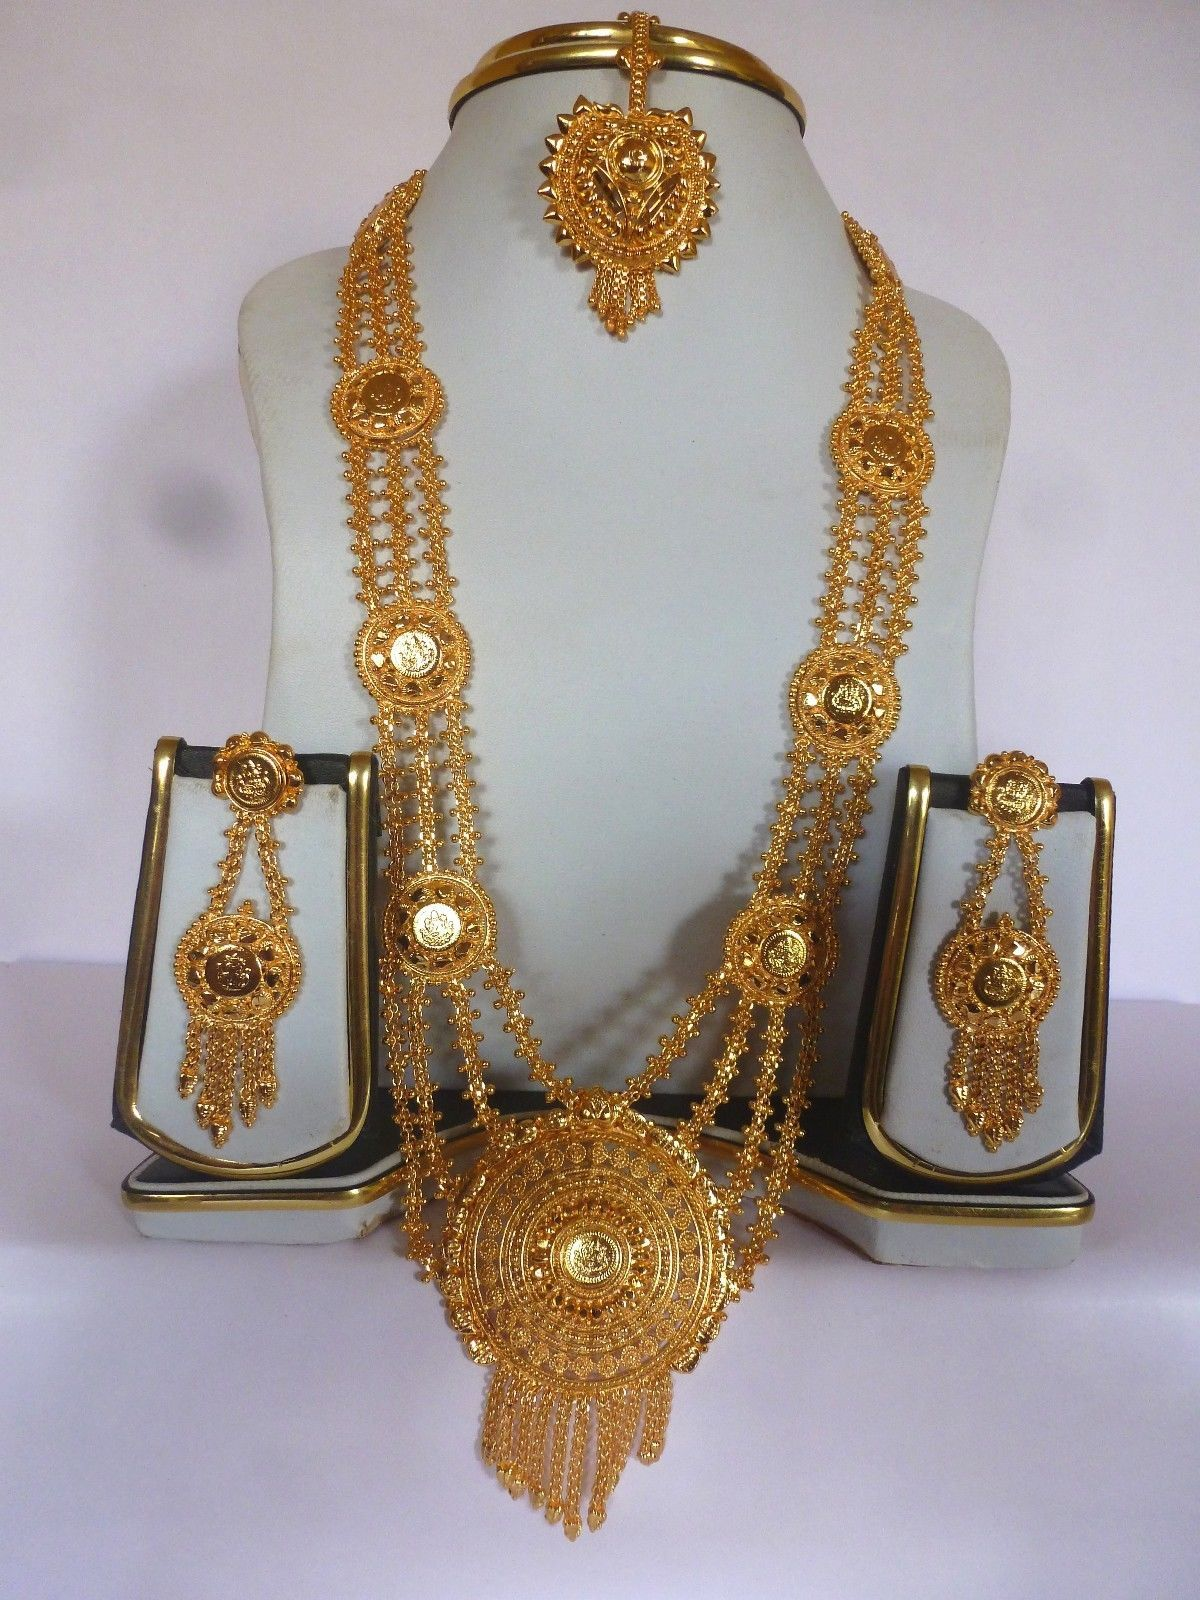 Bridal Set Collection Bridal Gold Jewellery Bridal Necklace Set Gold Necklace Indian Bridal Jewelry